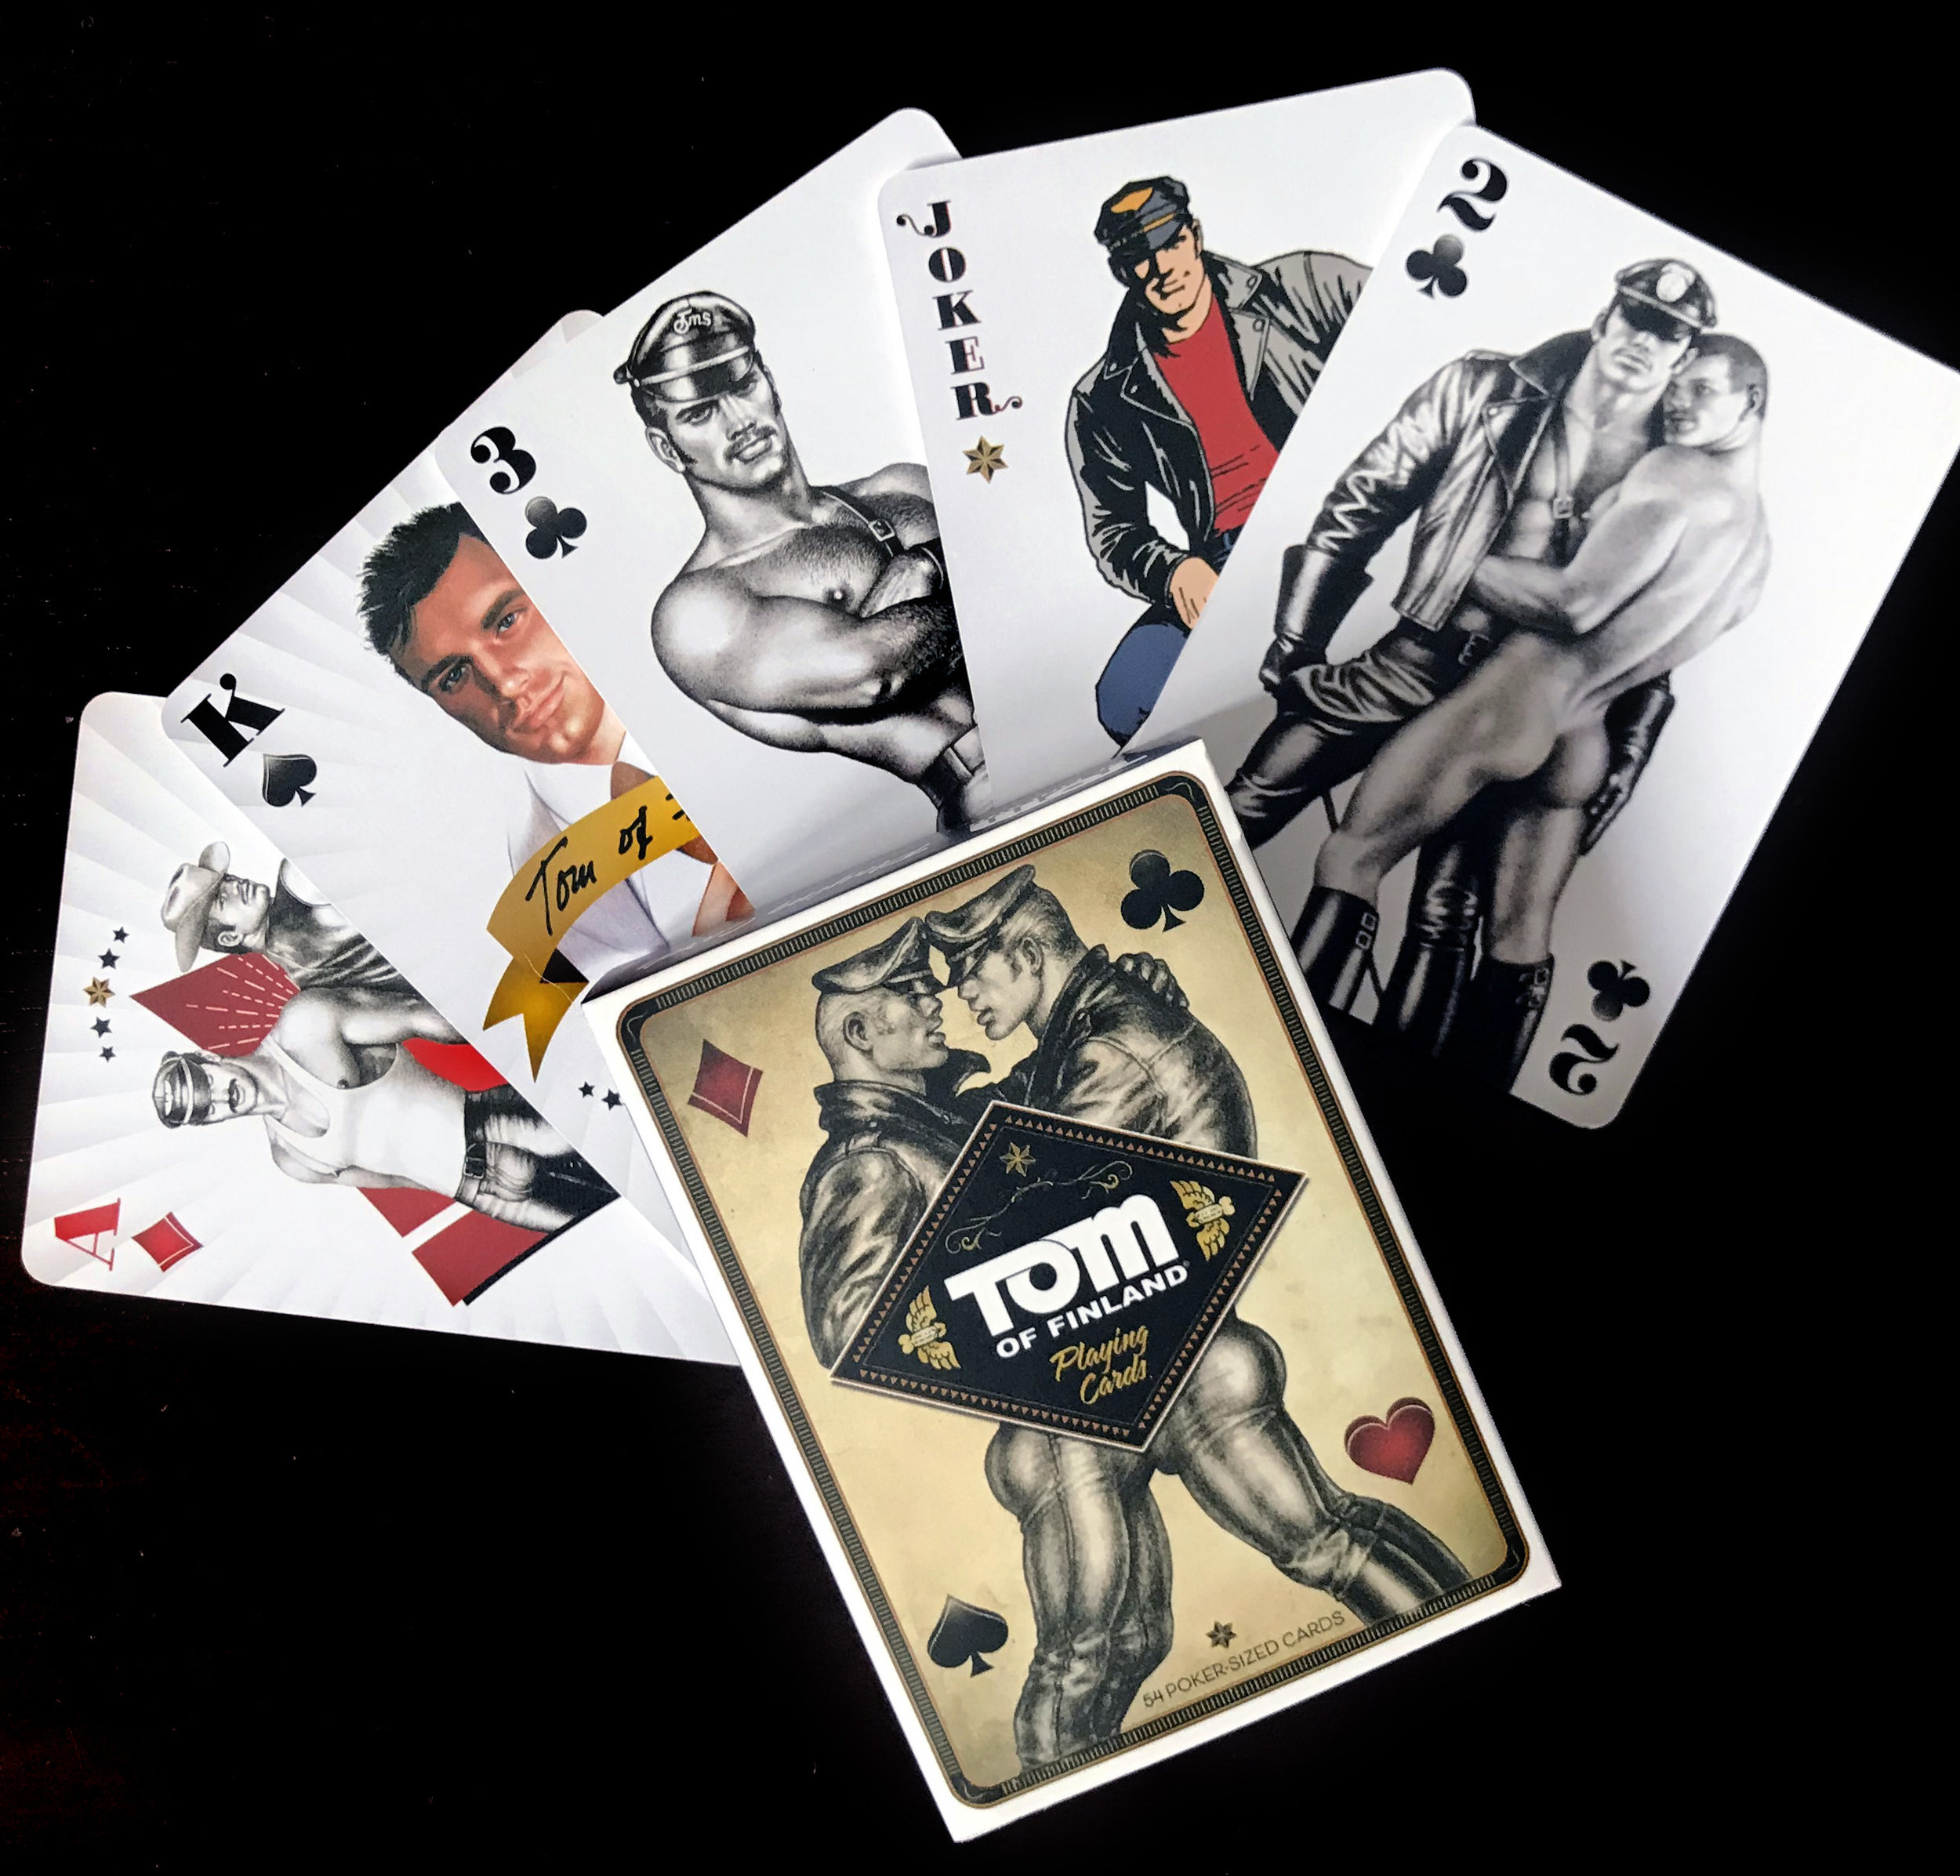 Tom of finland playing cards leather pants.JPG